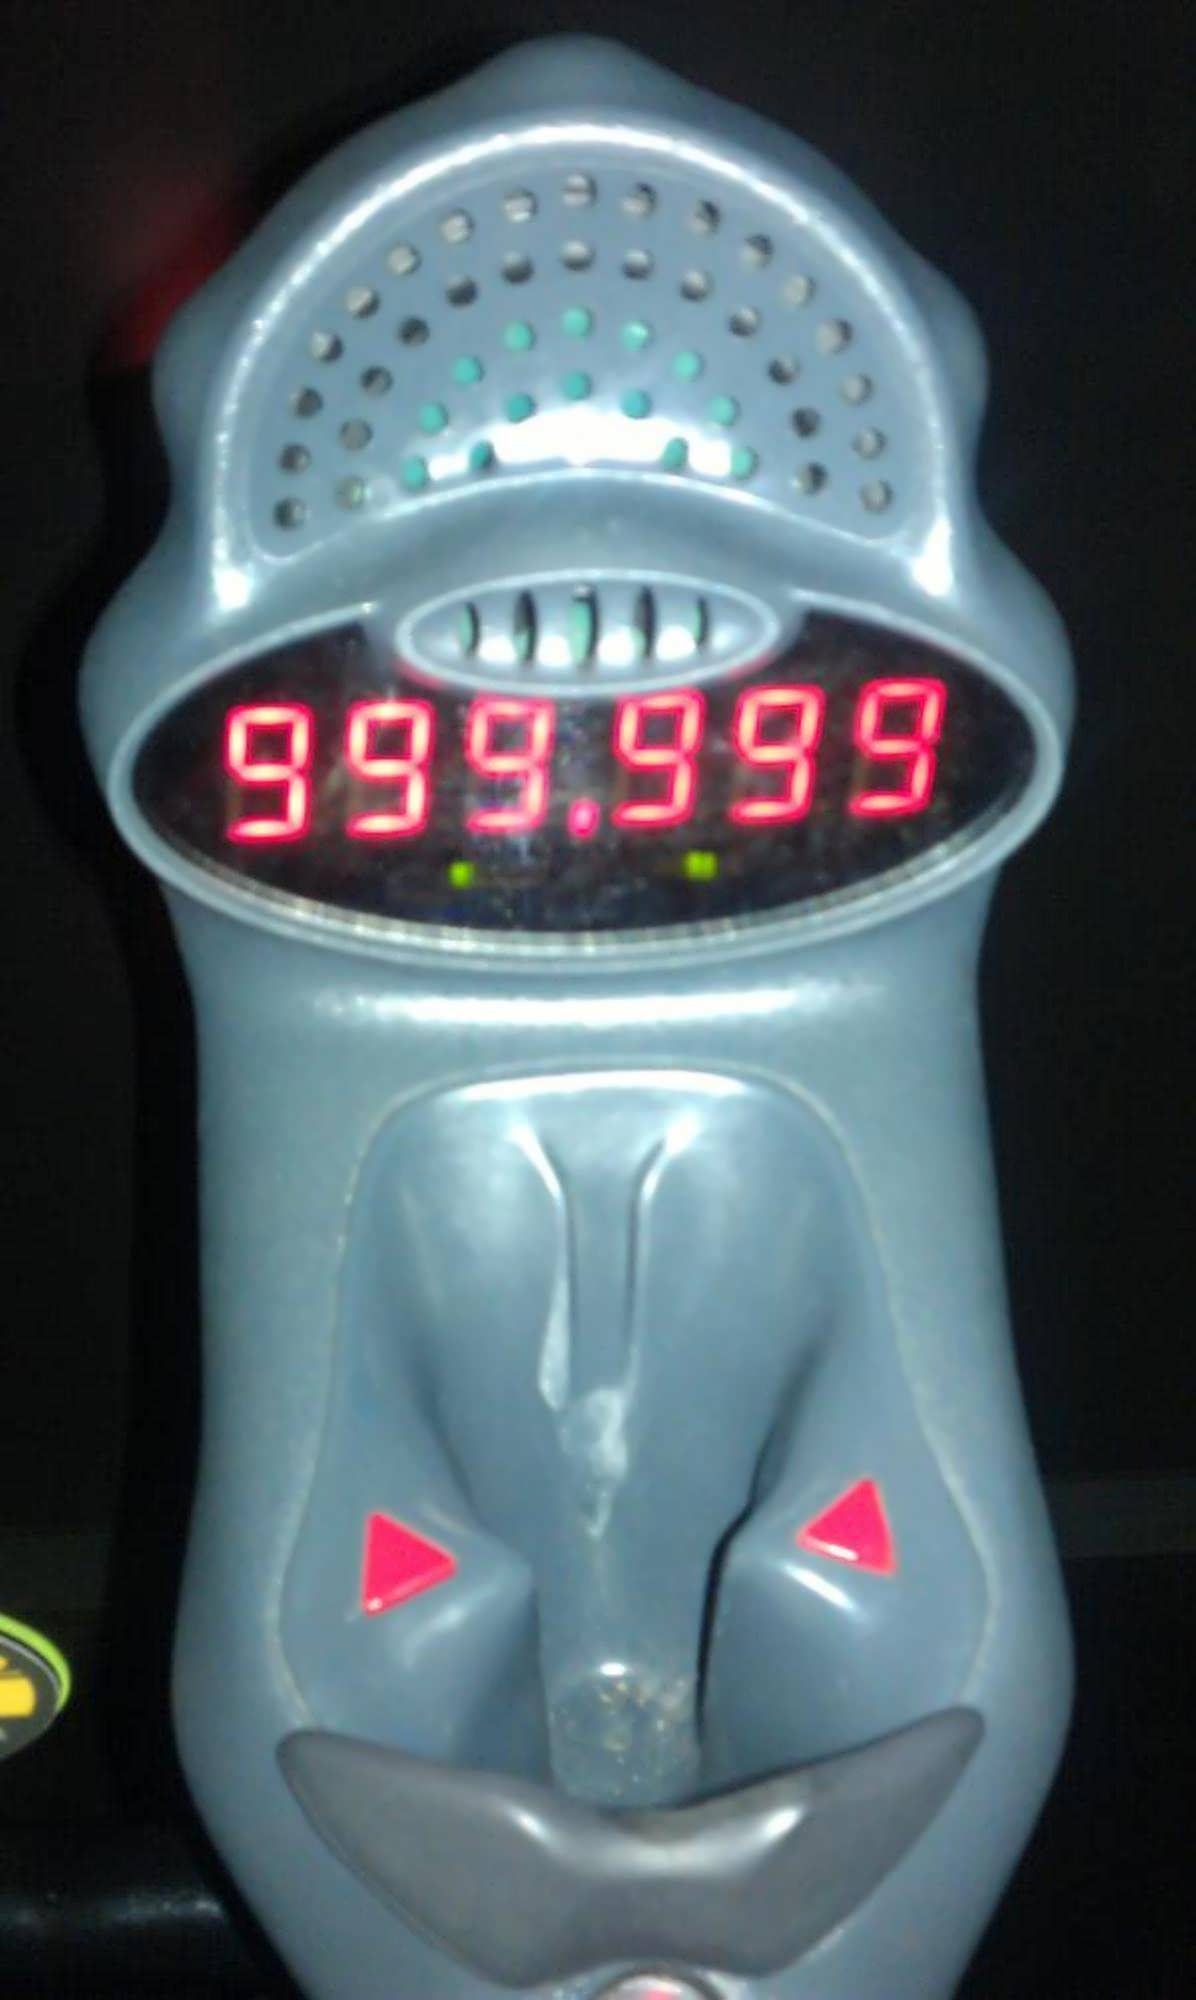 High score of 999,999 points at MEN IN BLACK Alien Attack at Universal Studios Florida